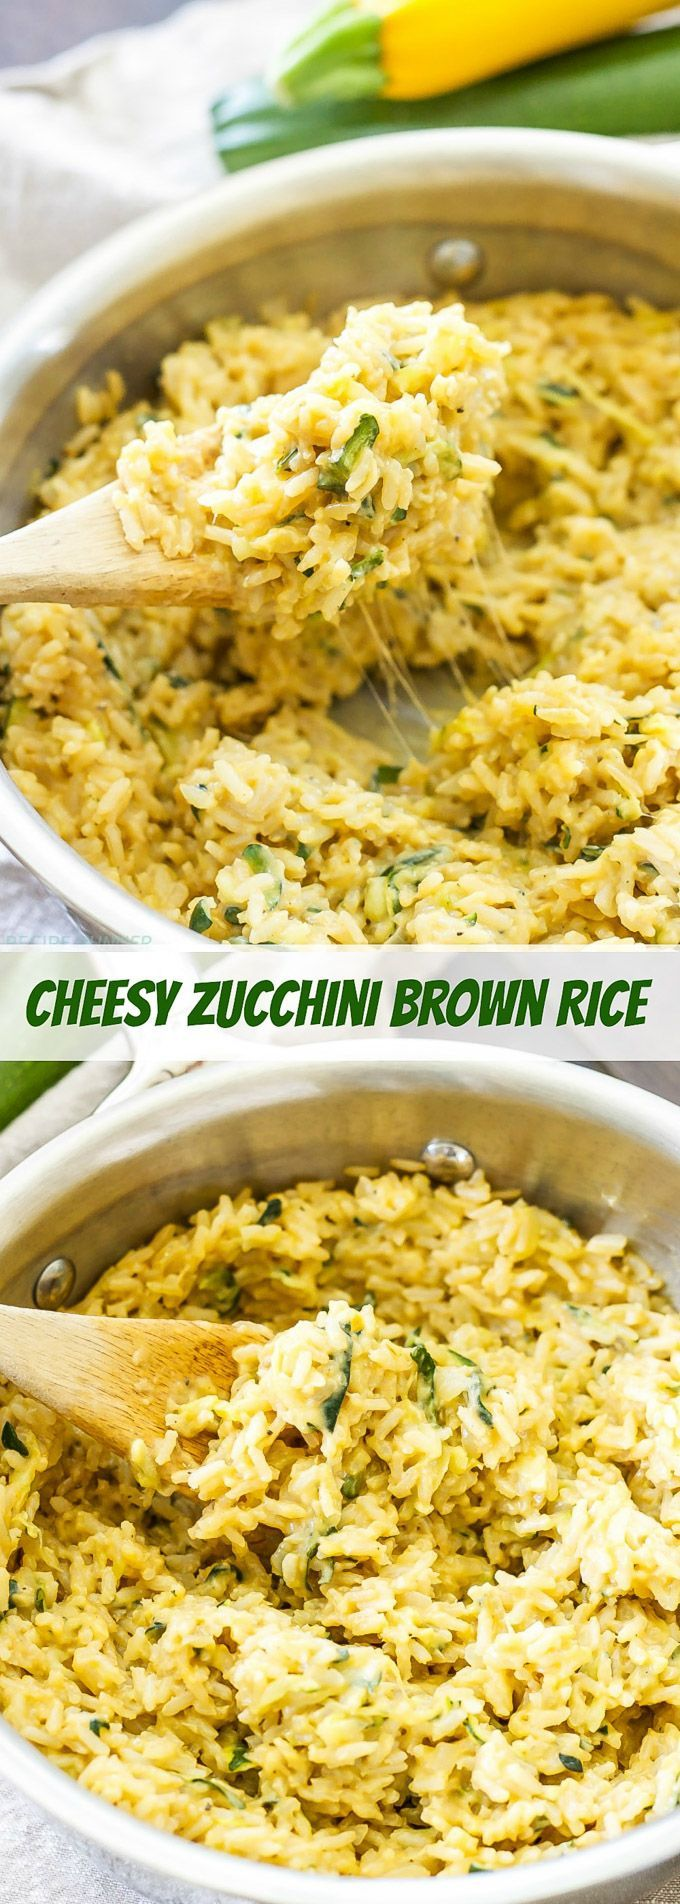 Cheesy Zucchini Brown Rice | Whole grain, gluten free, vegetarian and loaded…